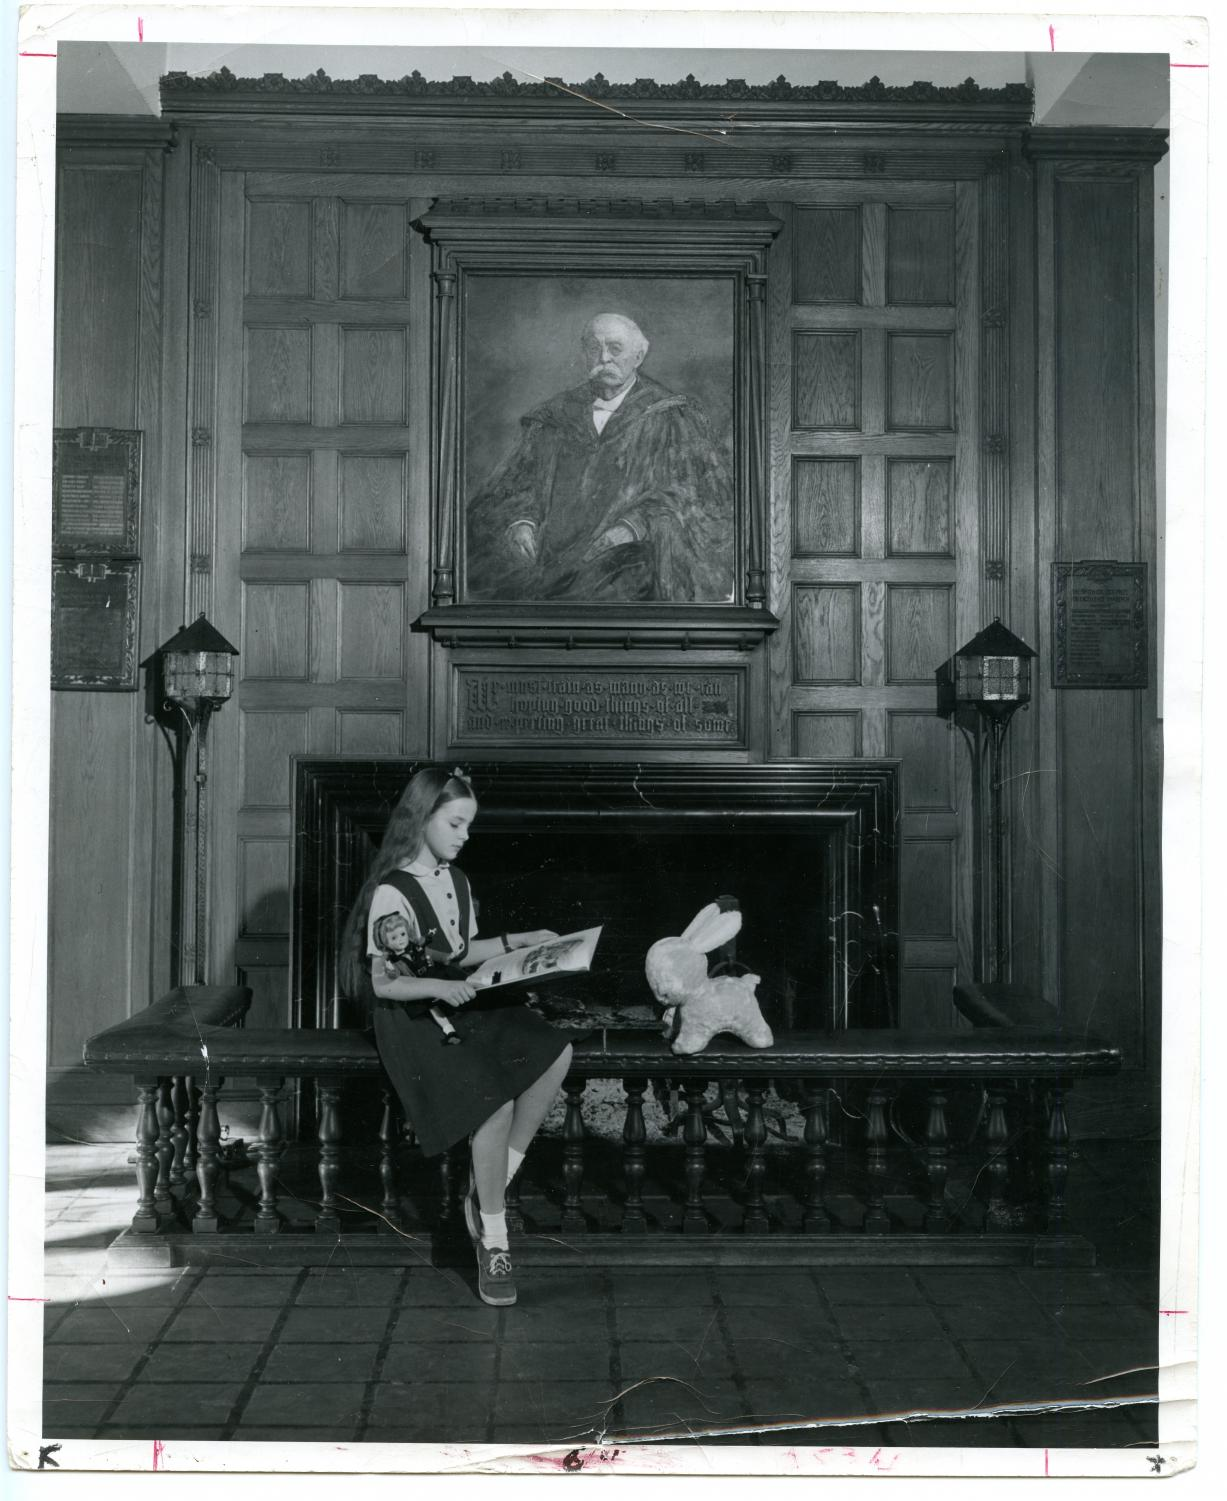 A student studies in front of the main fireplace of Northrop, circa 1951